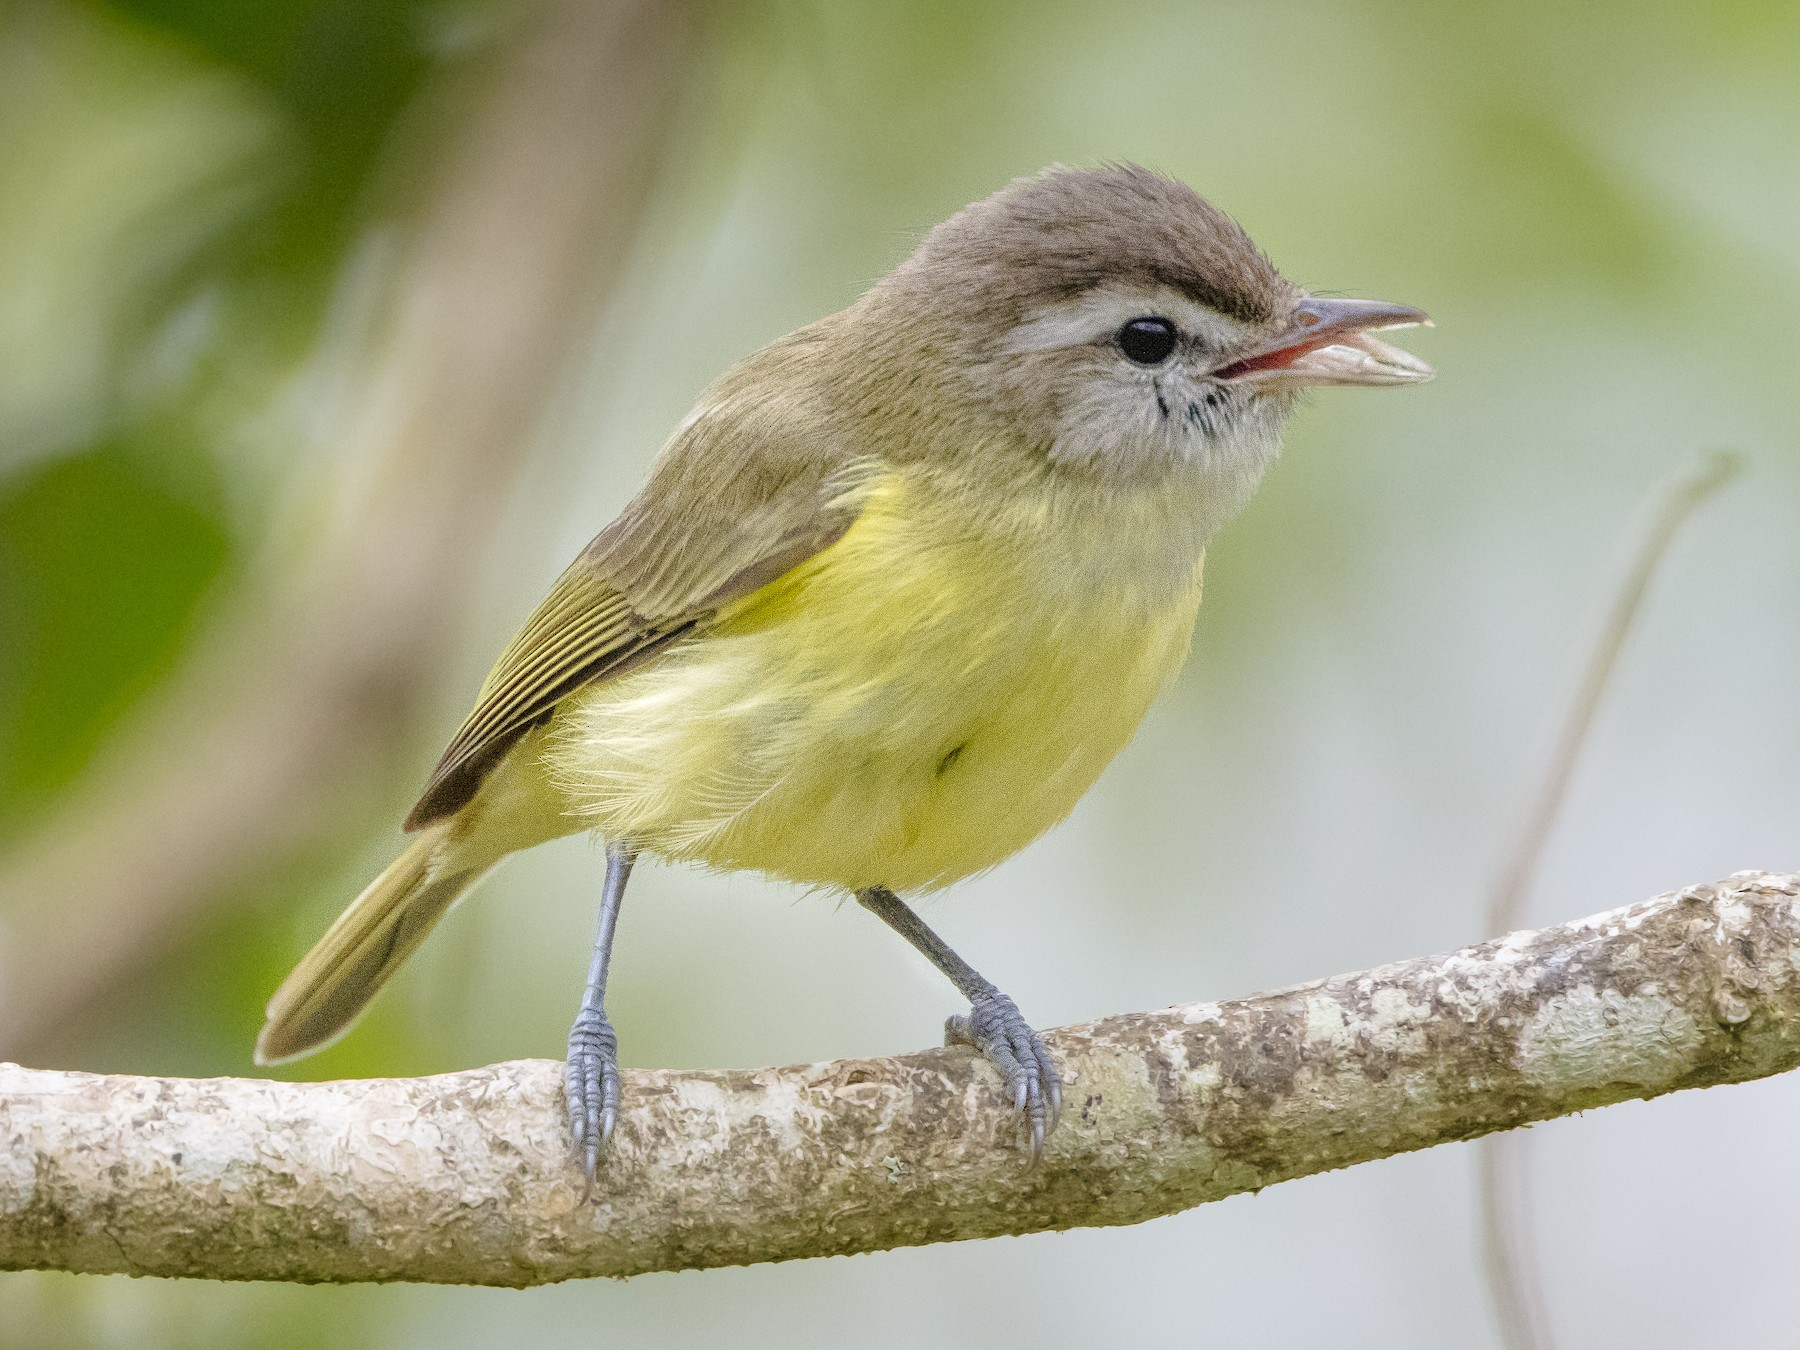 Brown-capped Vireo - Shirley Donald